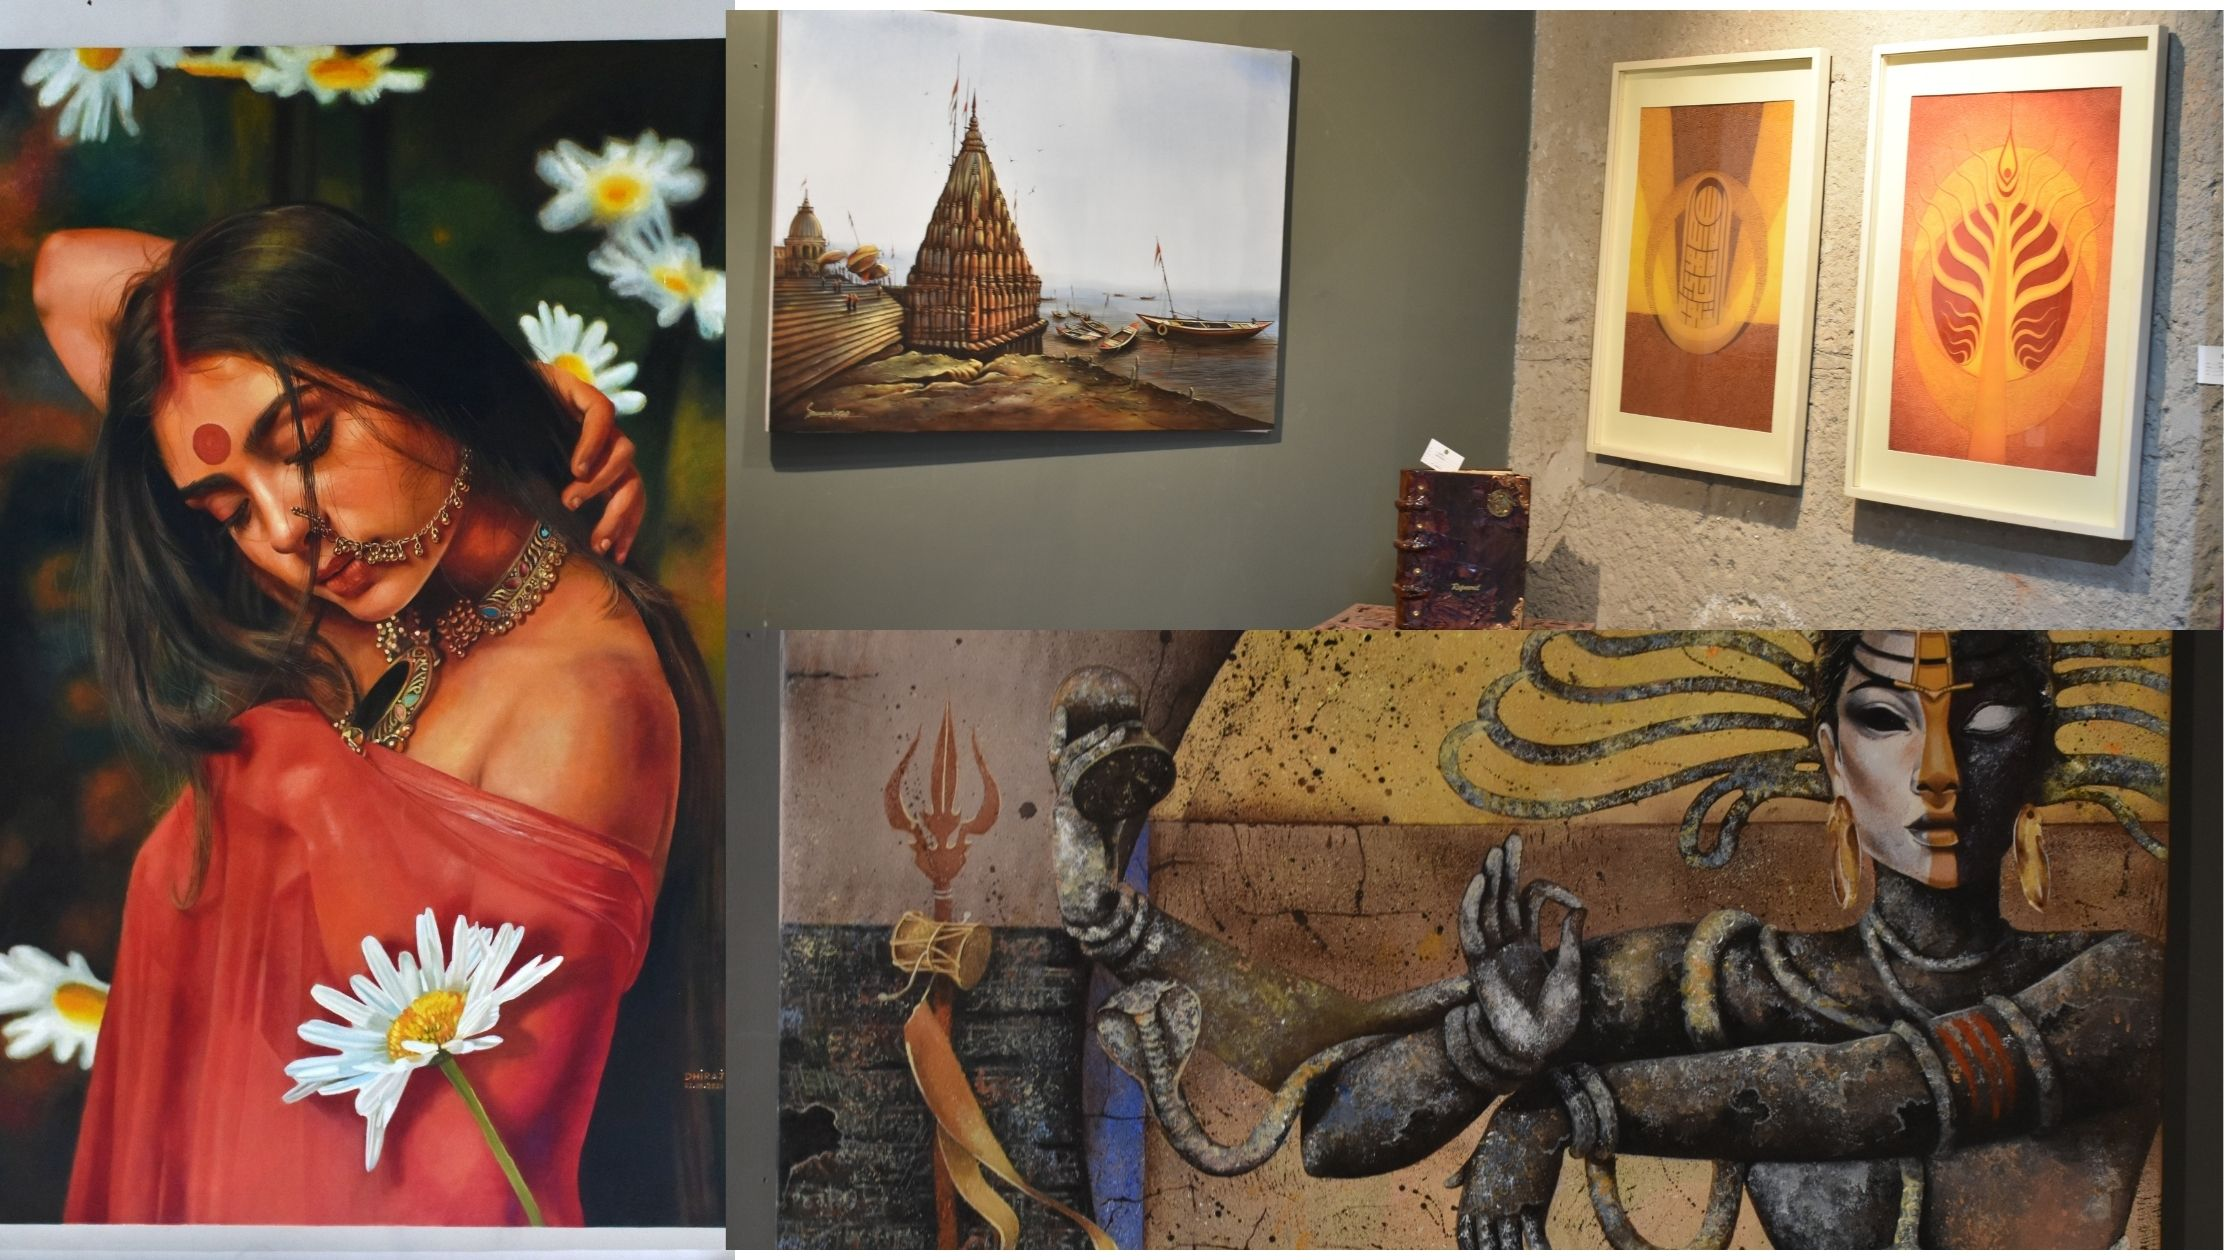 Curated by artist Hem Rana, the 'Glimpses of Art' exhibition at the ICA Art showcases over 100 contemporary art works of 32 artists from different parts of India. From abstract and figurative art to paintings depicting surrealism, impressionism and realism, there is a lot for art lovers to soak in at the exhibition.